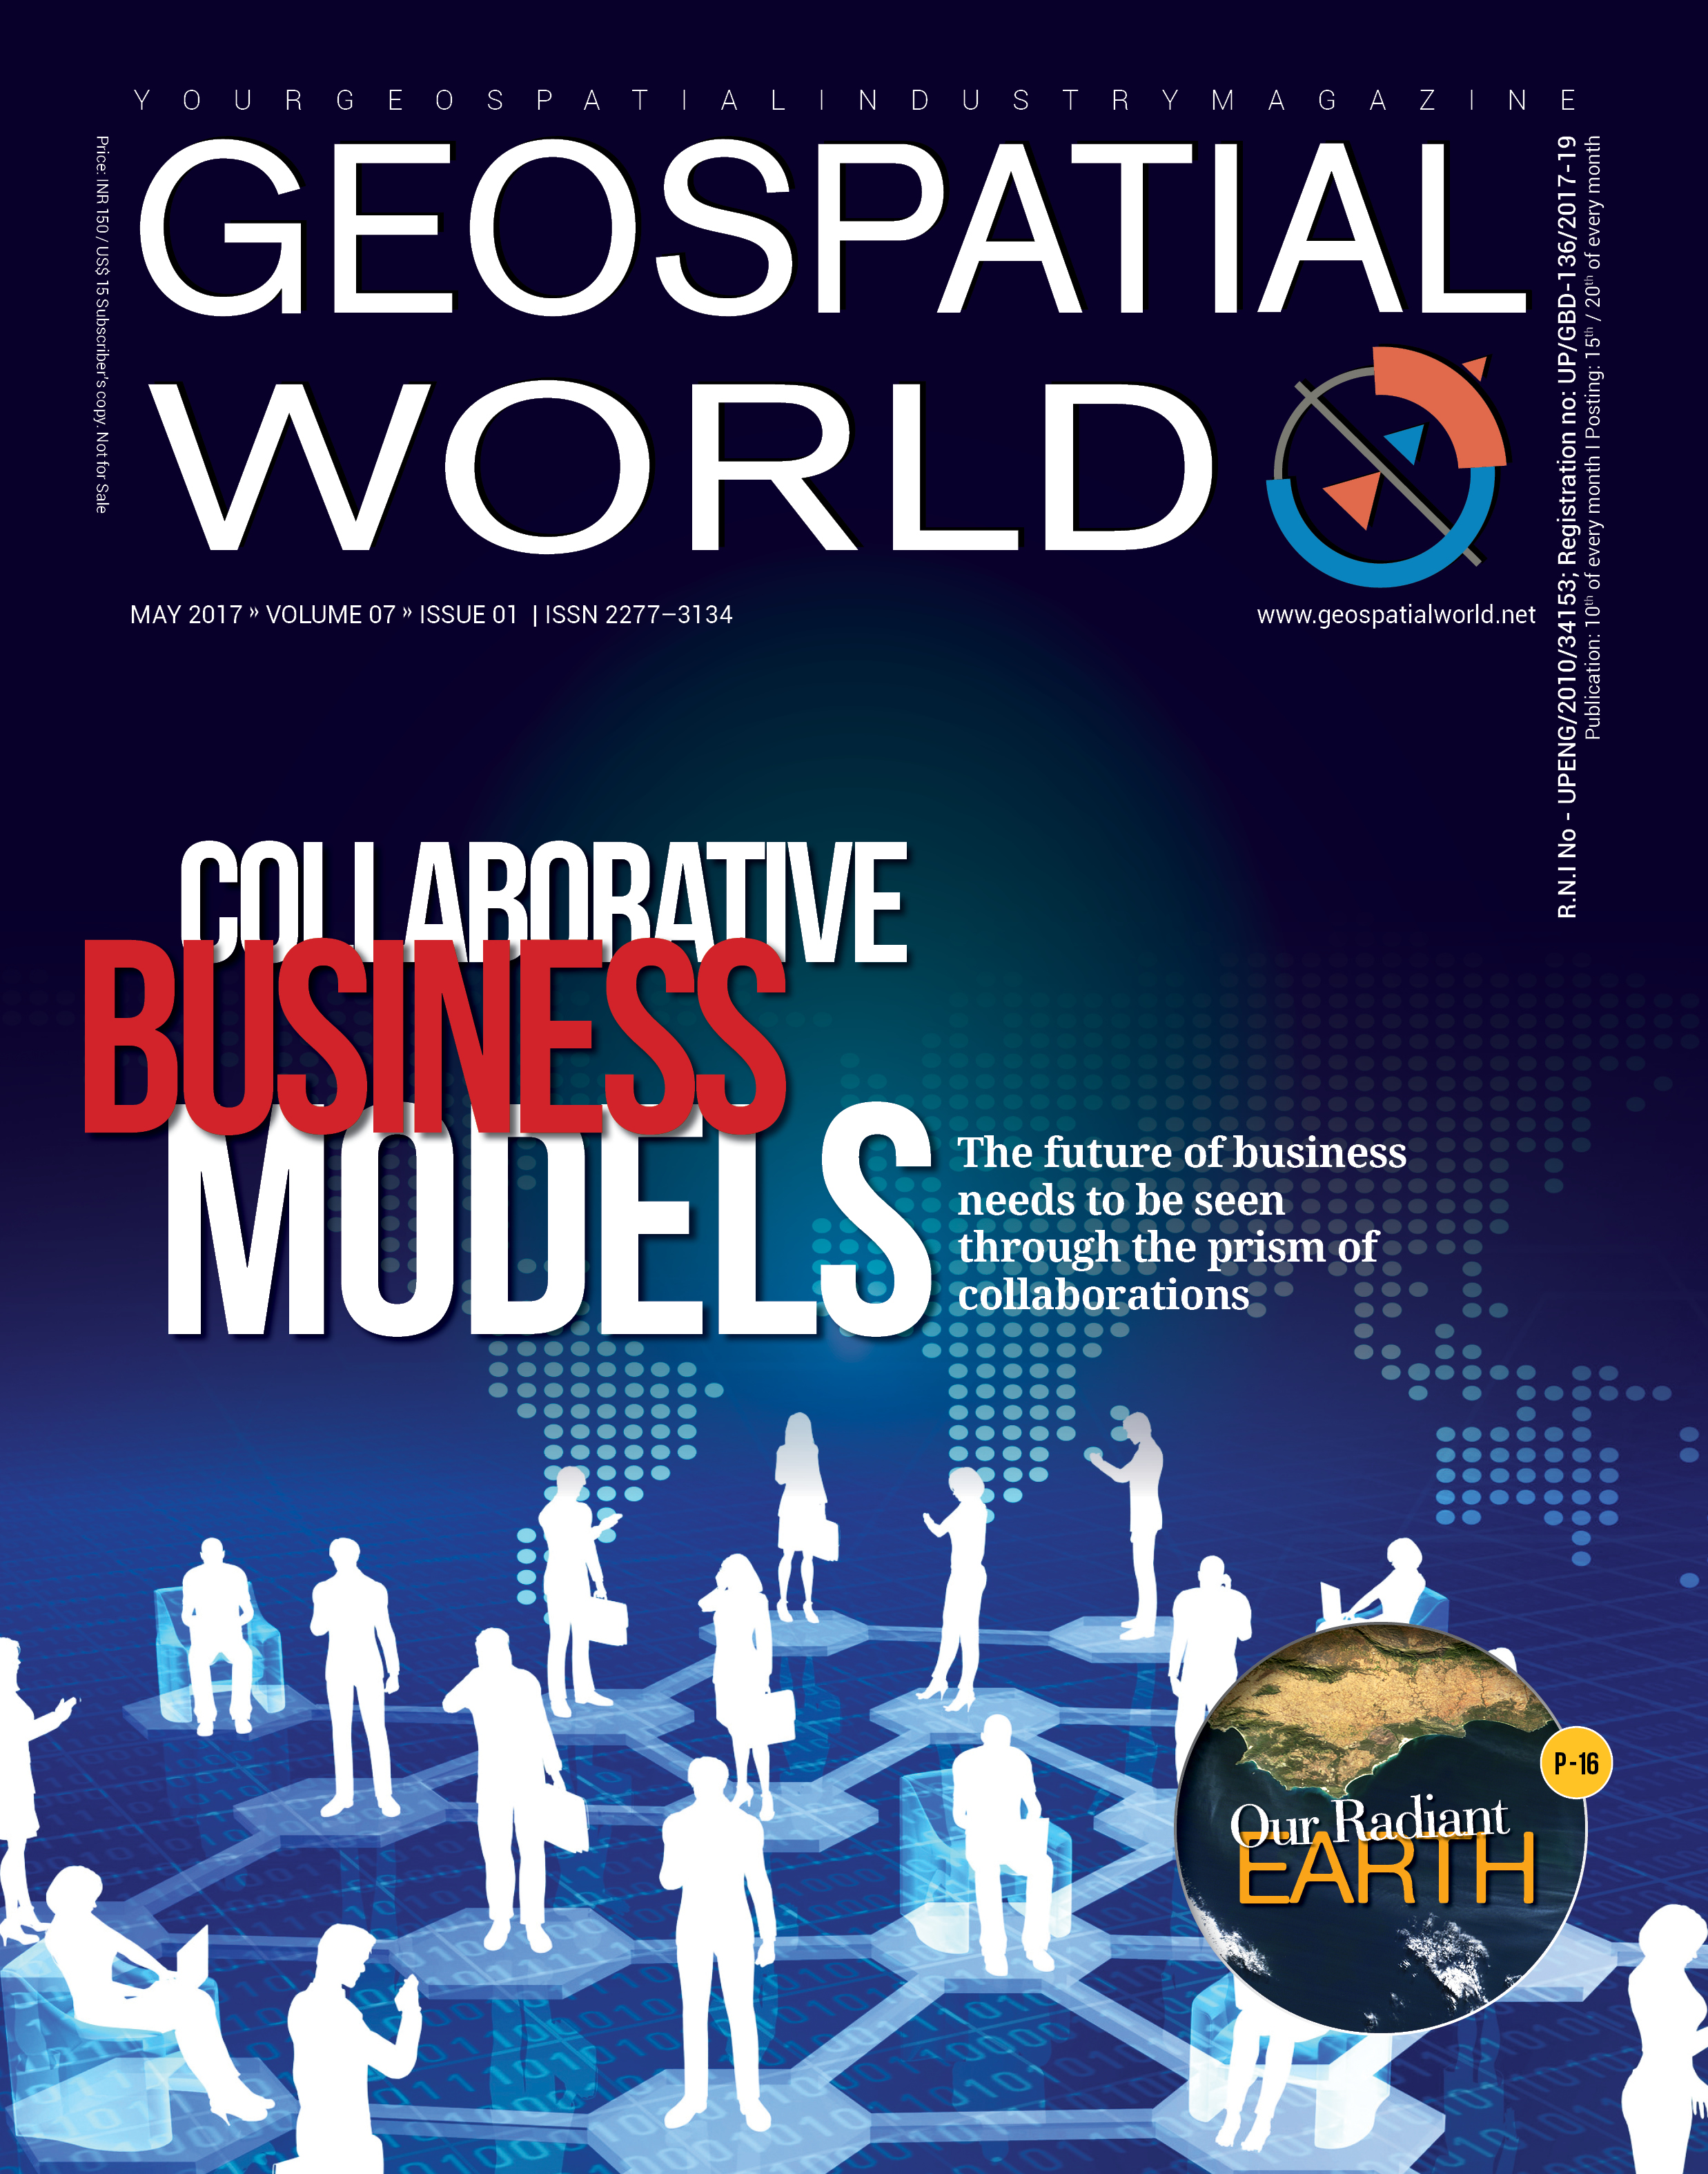 Geospatial World Magazine May 2017: Collabrative business models